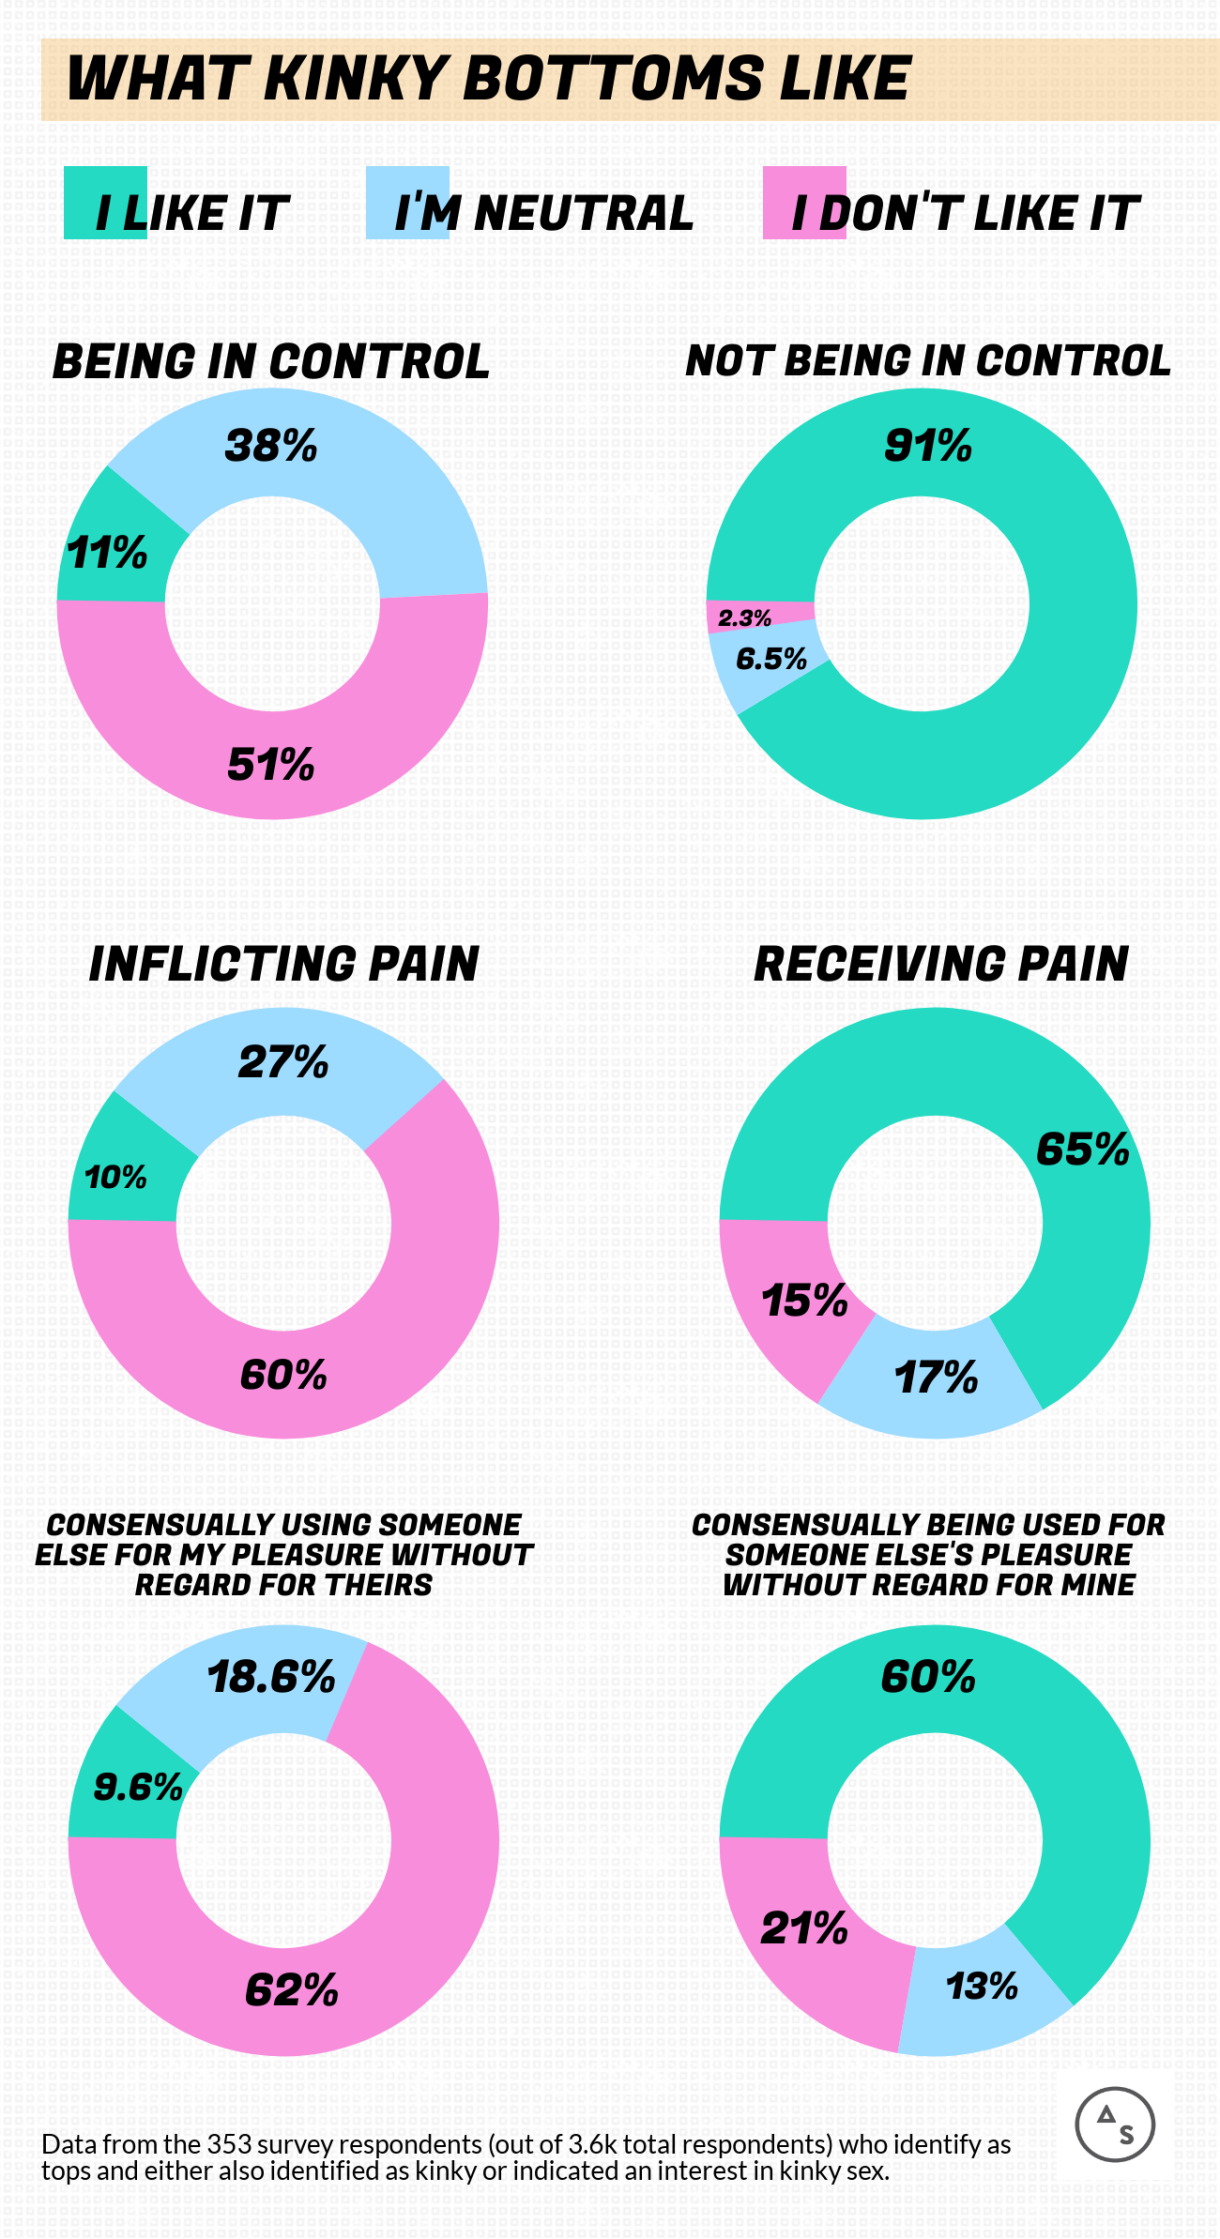 WHAT KINKY BOTTOMS LIKE // Being In Control: 11% like it, 51% don't like it, 38% are neutral. // Not Being In Control: 91% like it, 2.5% don't like it, 6.5% are neutral. // Receiving Pain: 65% like it, 15% don't like it, 17% are neutral. // Inflicting Pain: 60% don't like it, 10% don't like it, 27% like it // Consensually being used for someone else's pleasure without regard for mine: 60% like it, 13% are neutral, 21% don't like it // Consensually using someone else for my pleasure without regard for theirs: 62% don't like it, 9.6% like it, 18.6% are neutral